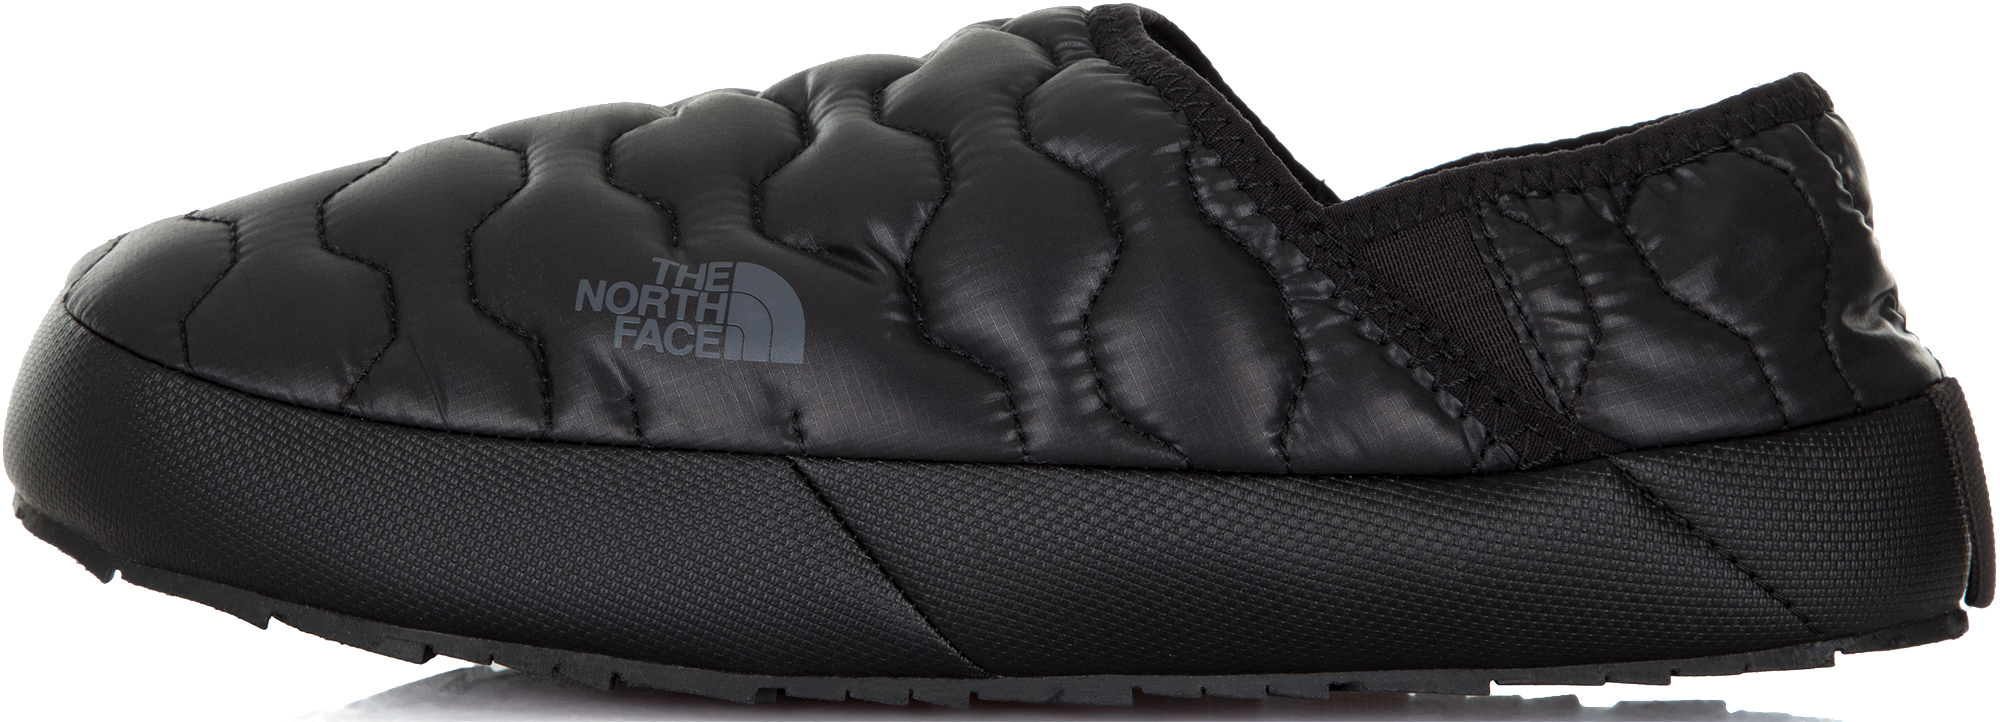 The North Face Полуботинки утепленные мужские The North Face ThermoBall Traction Mule IV, размер 44,5 цена 2017